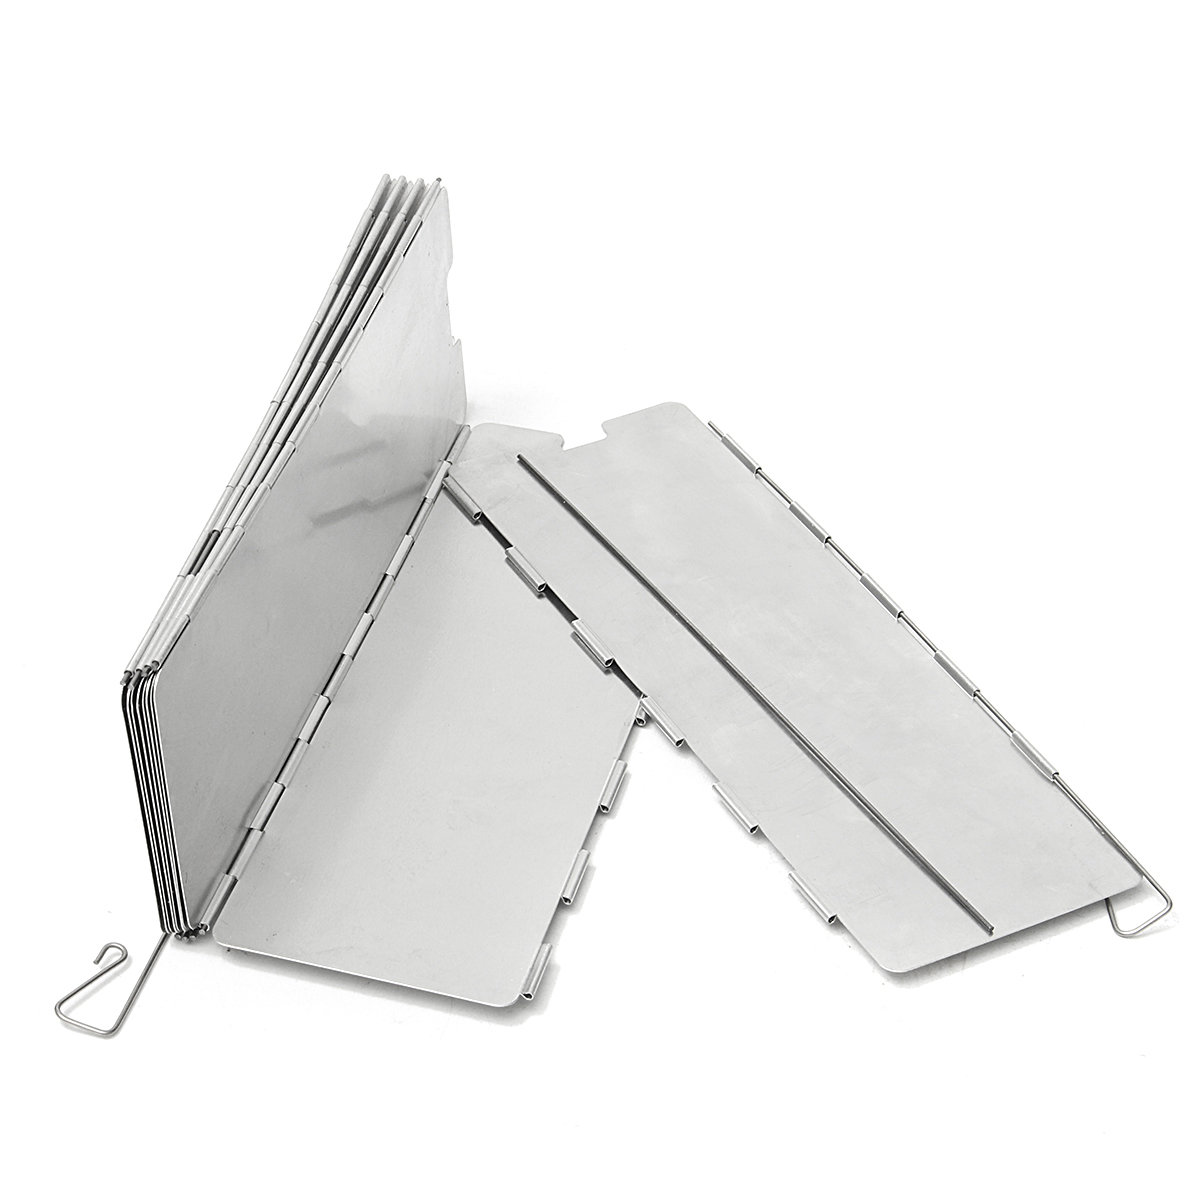 Camping 10 Plates Folding Wind Shield Picnic BBQ Cooking Gas Stove Aluminum Board Screen